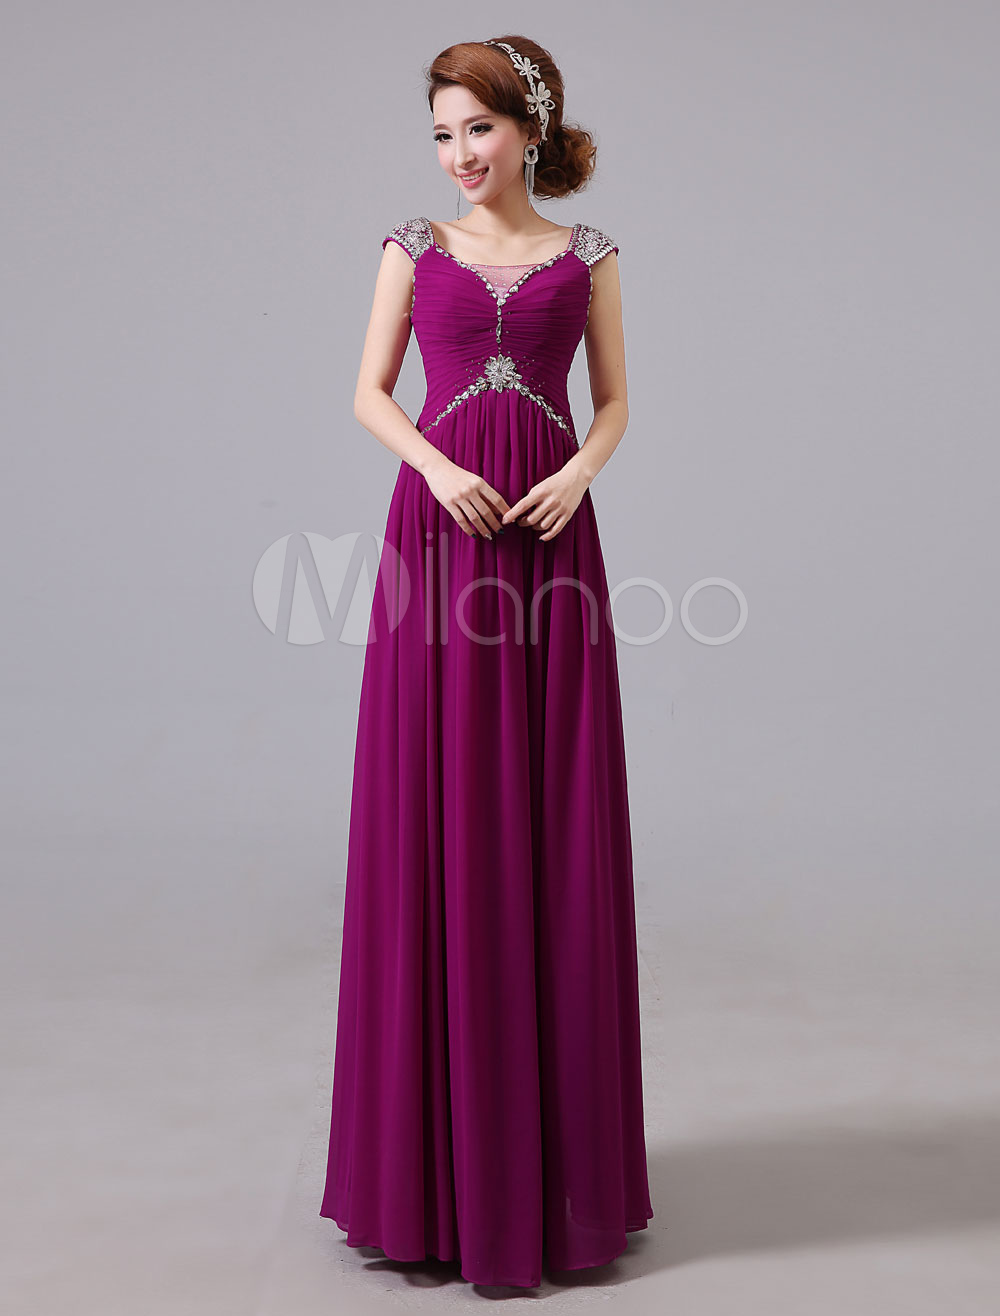 Buy Evening Dresses Formal Chiffon Long Prom Dress Beading Ruched Floor Length Special Occasion Dress for $87.99 in Milanoo store